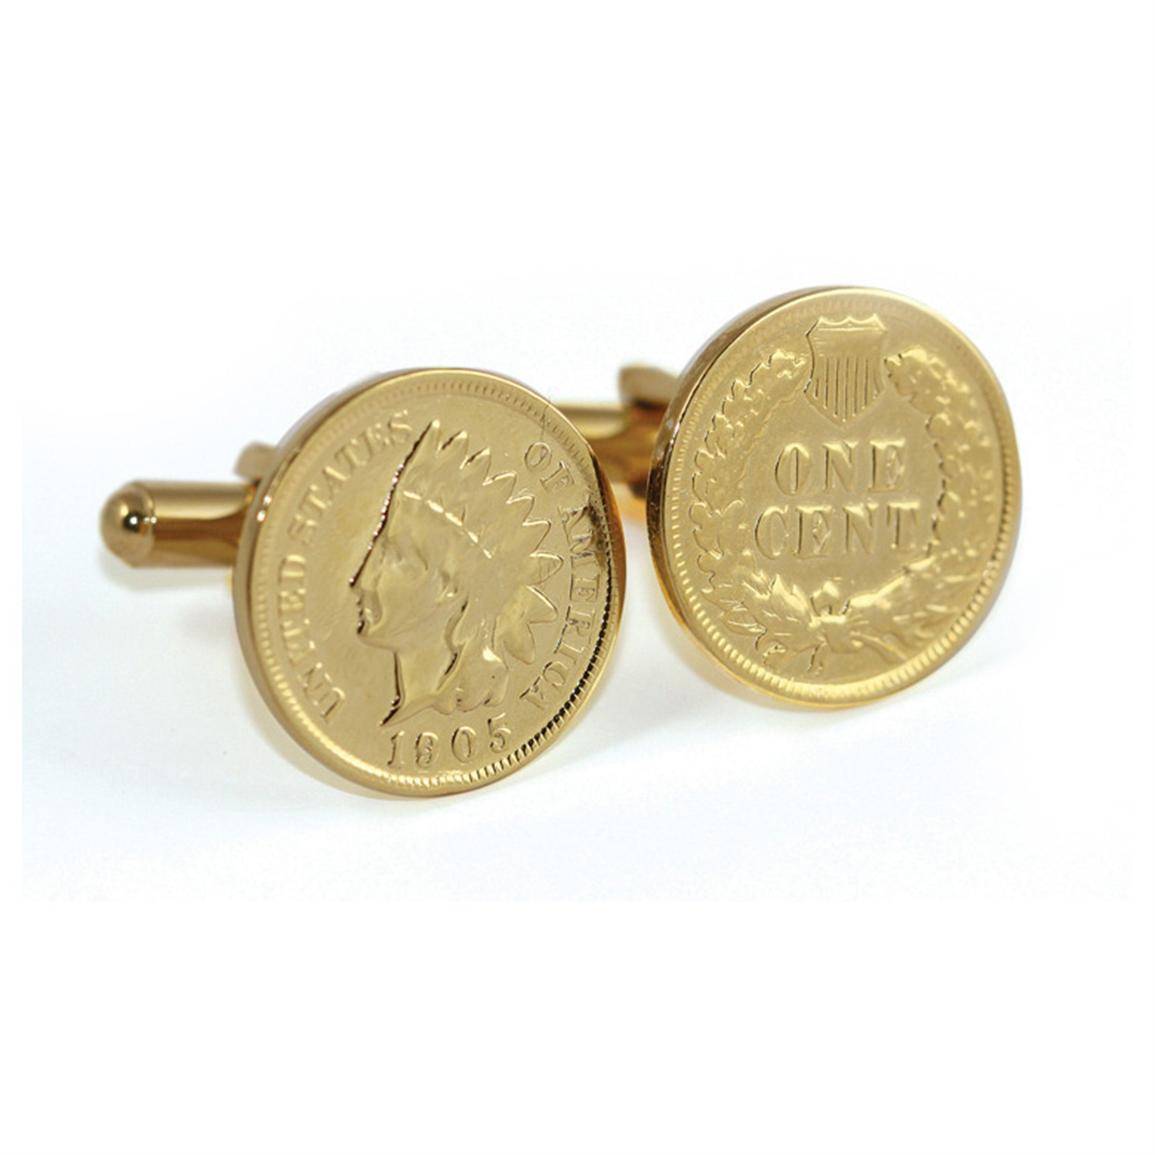 24KT Gold-layered Indian Head Coin Cuff Links